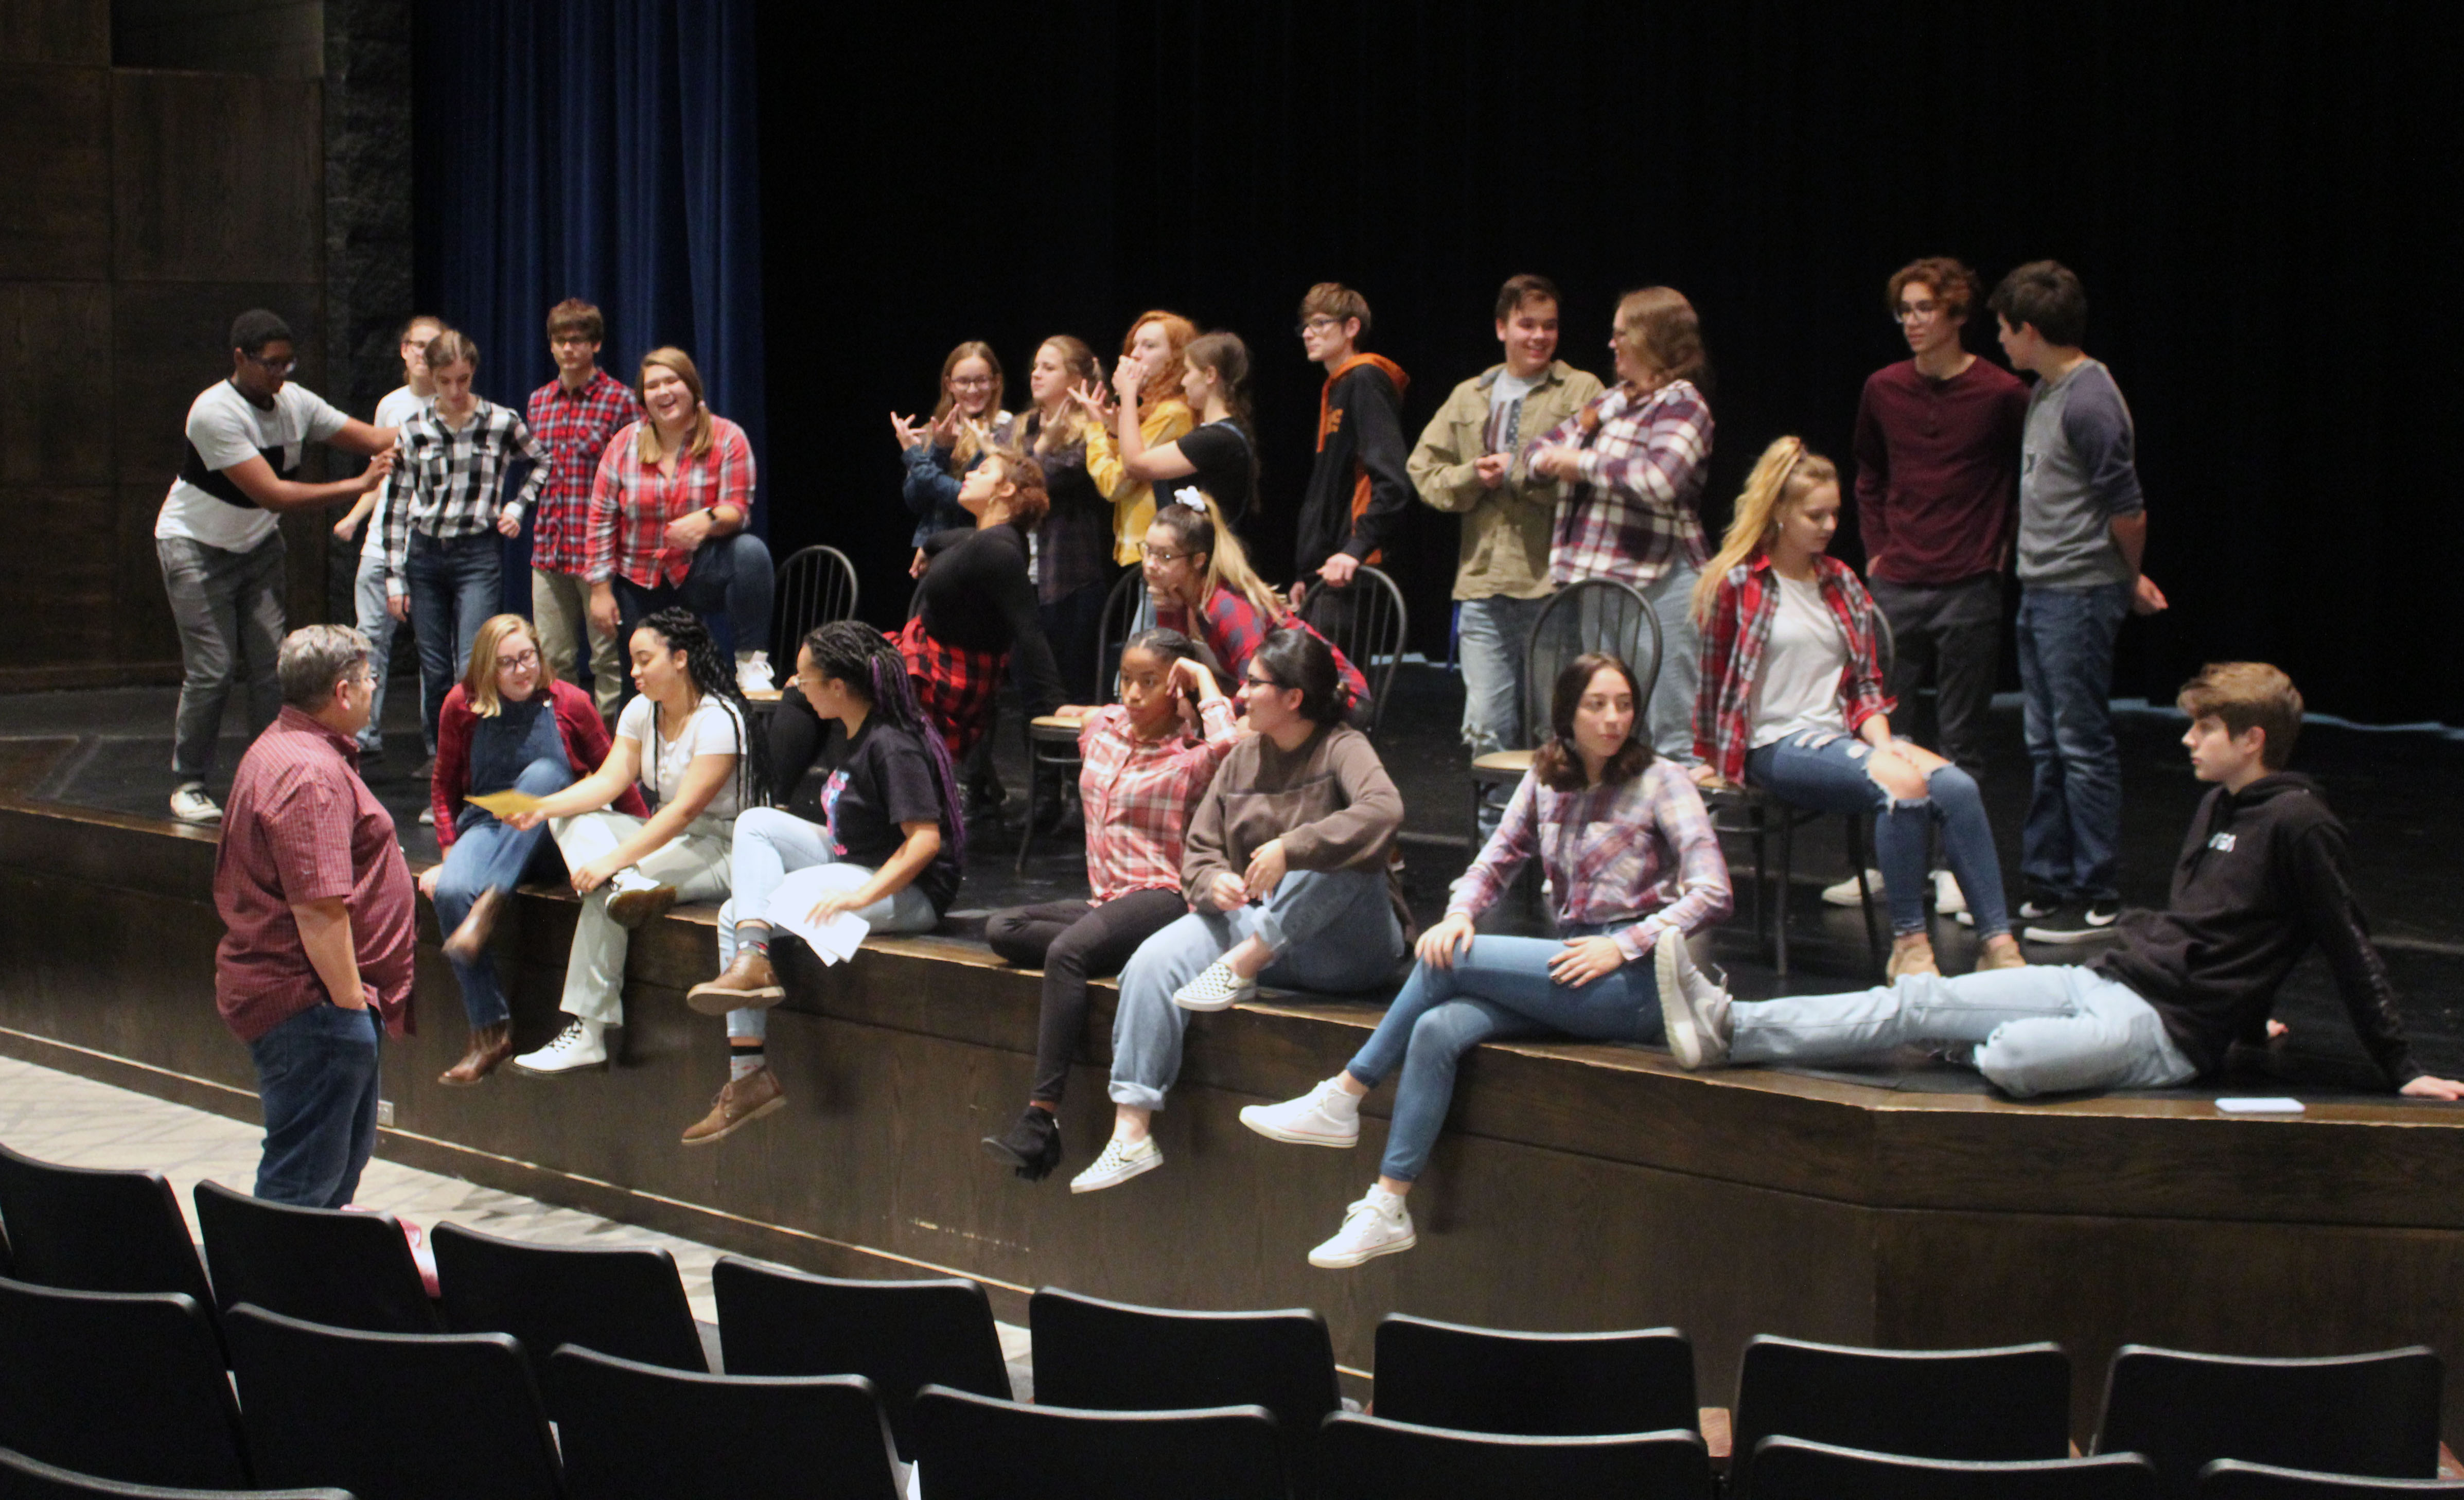 PLSHS students to perform Talent Showcase on October 17, 18